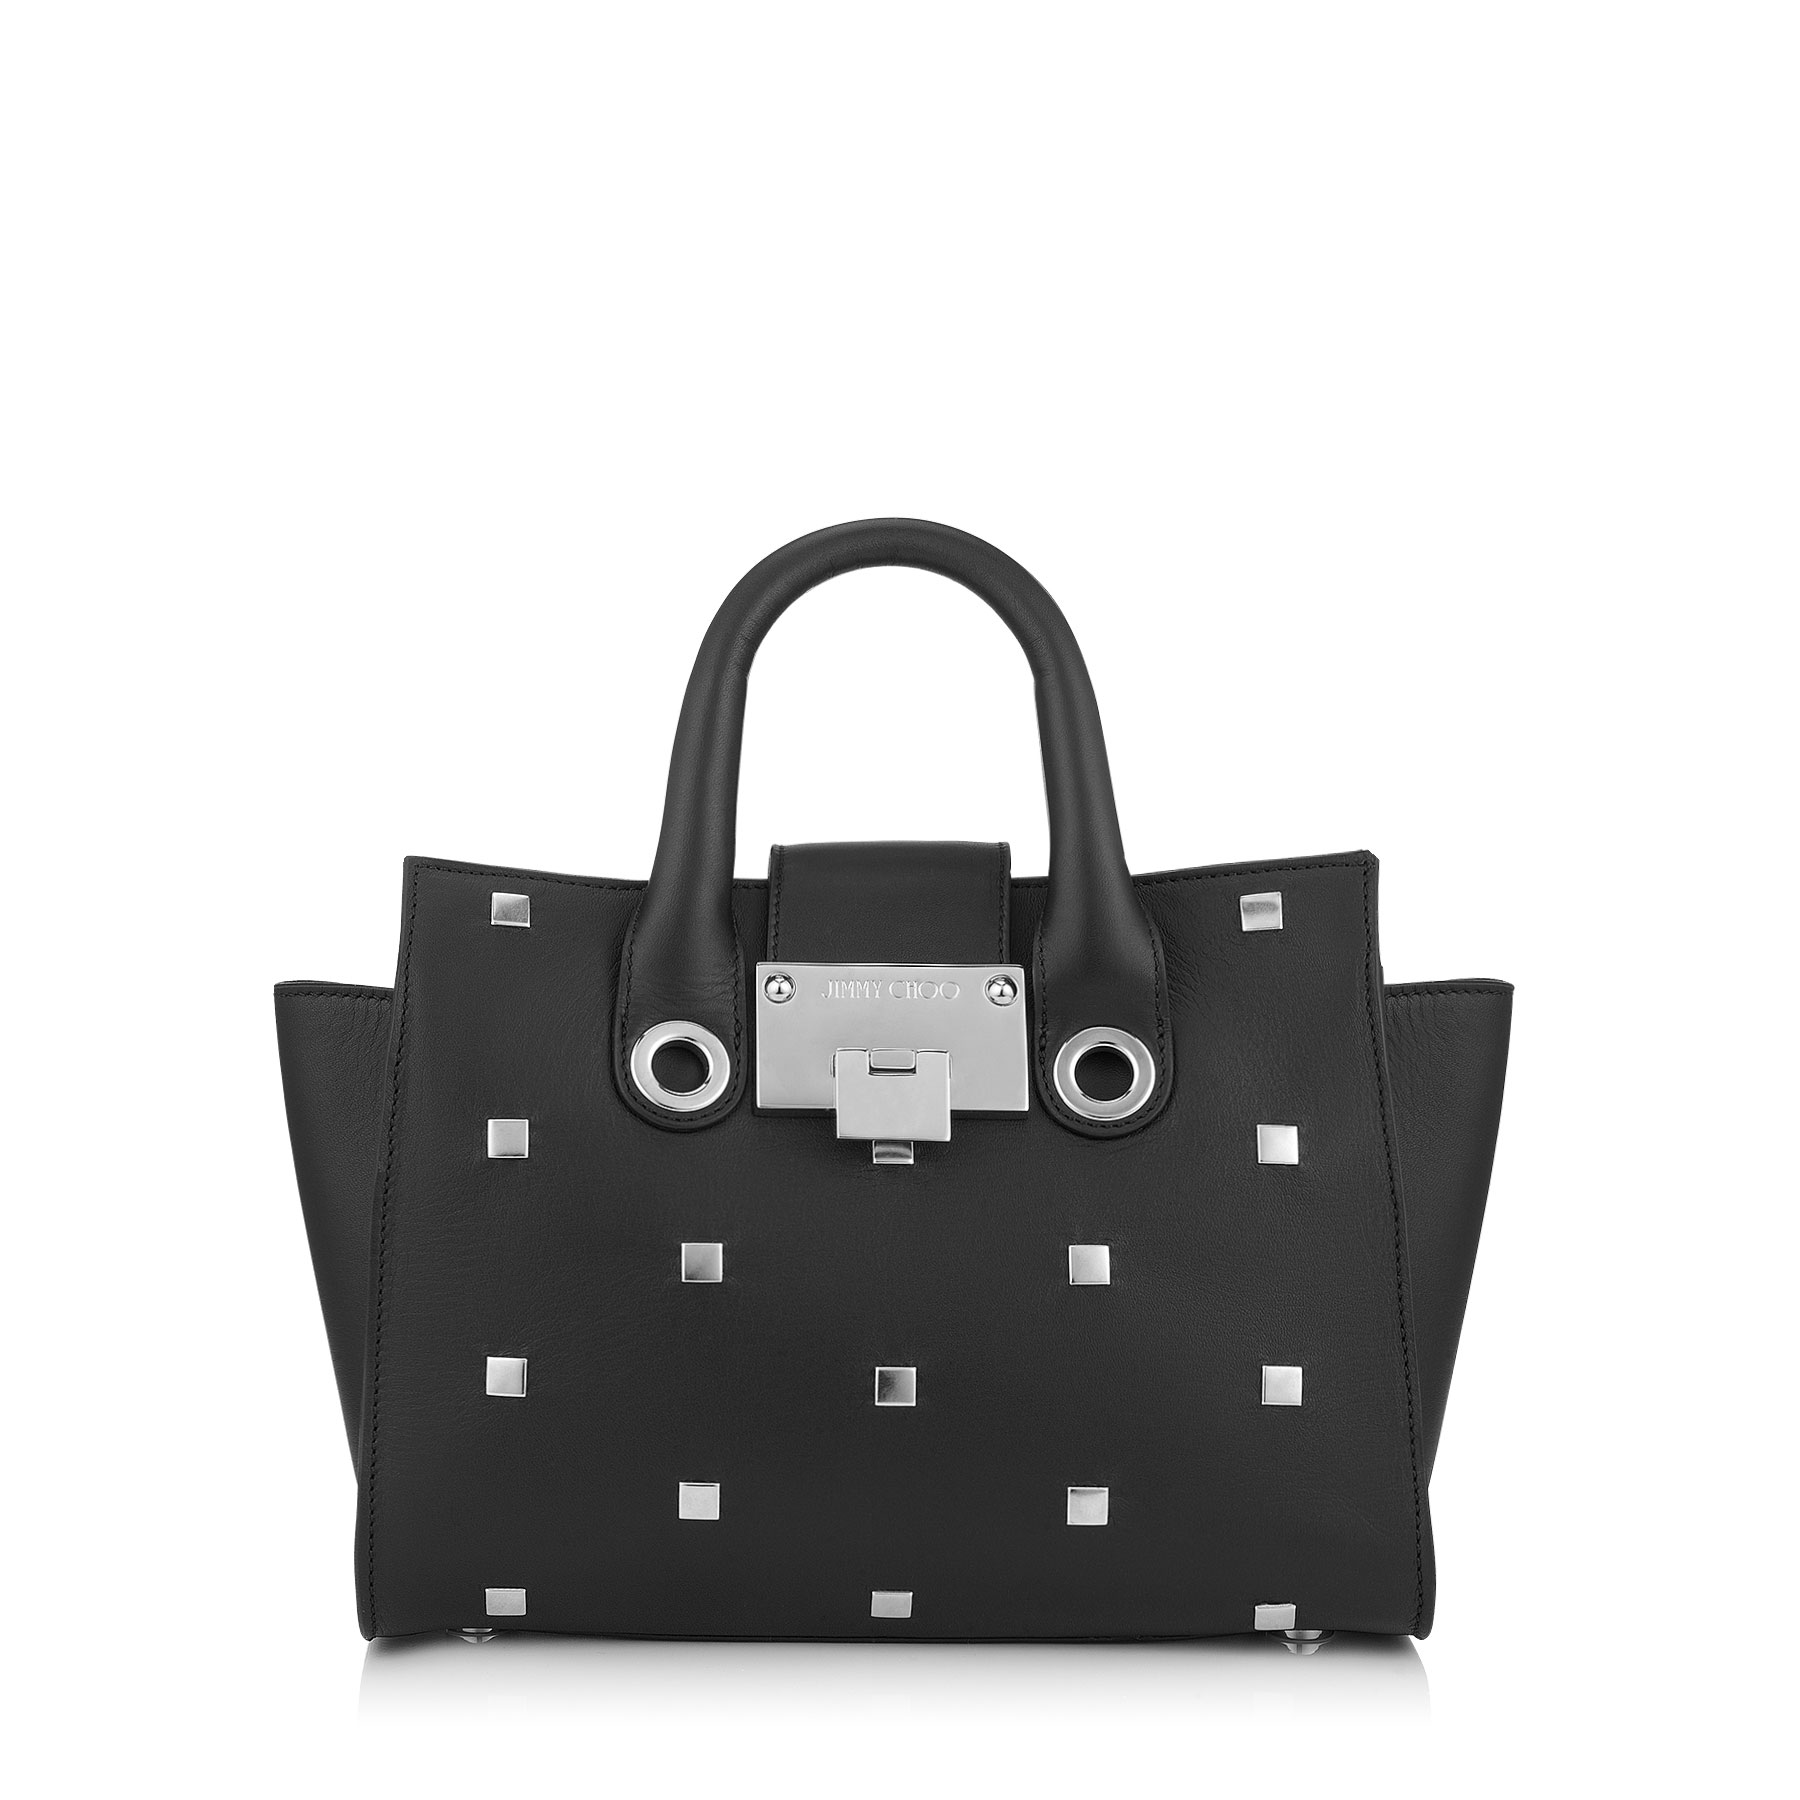 RILEY/S Small Black Smooth Leather Tote Bag with Square Studs